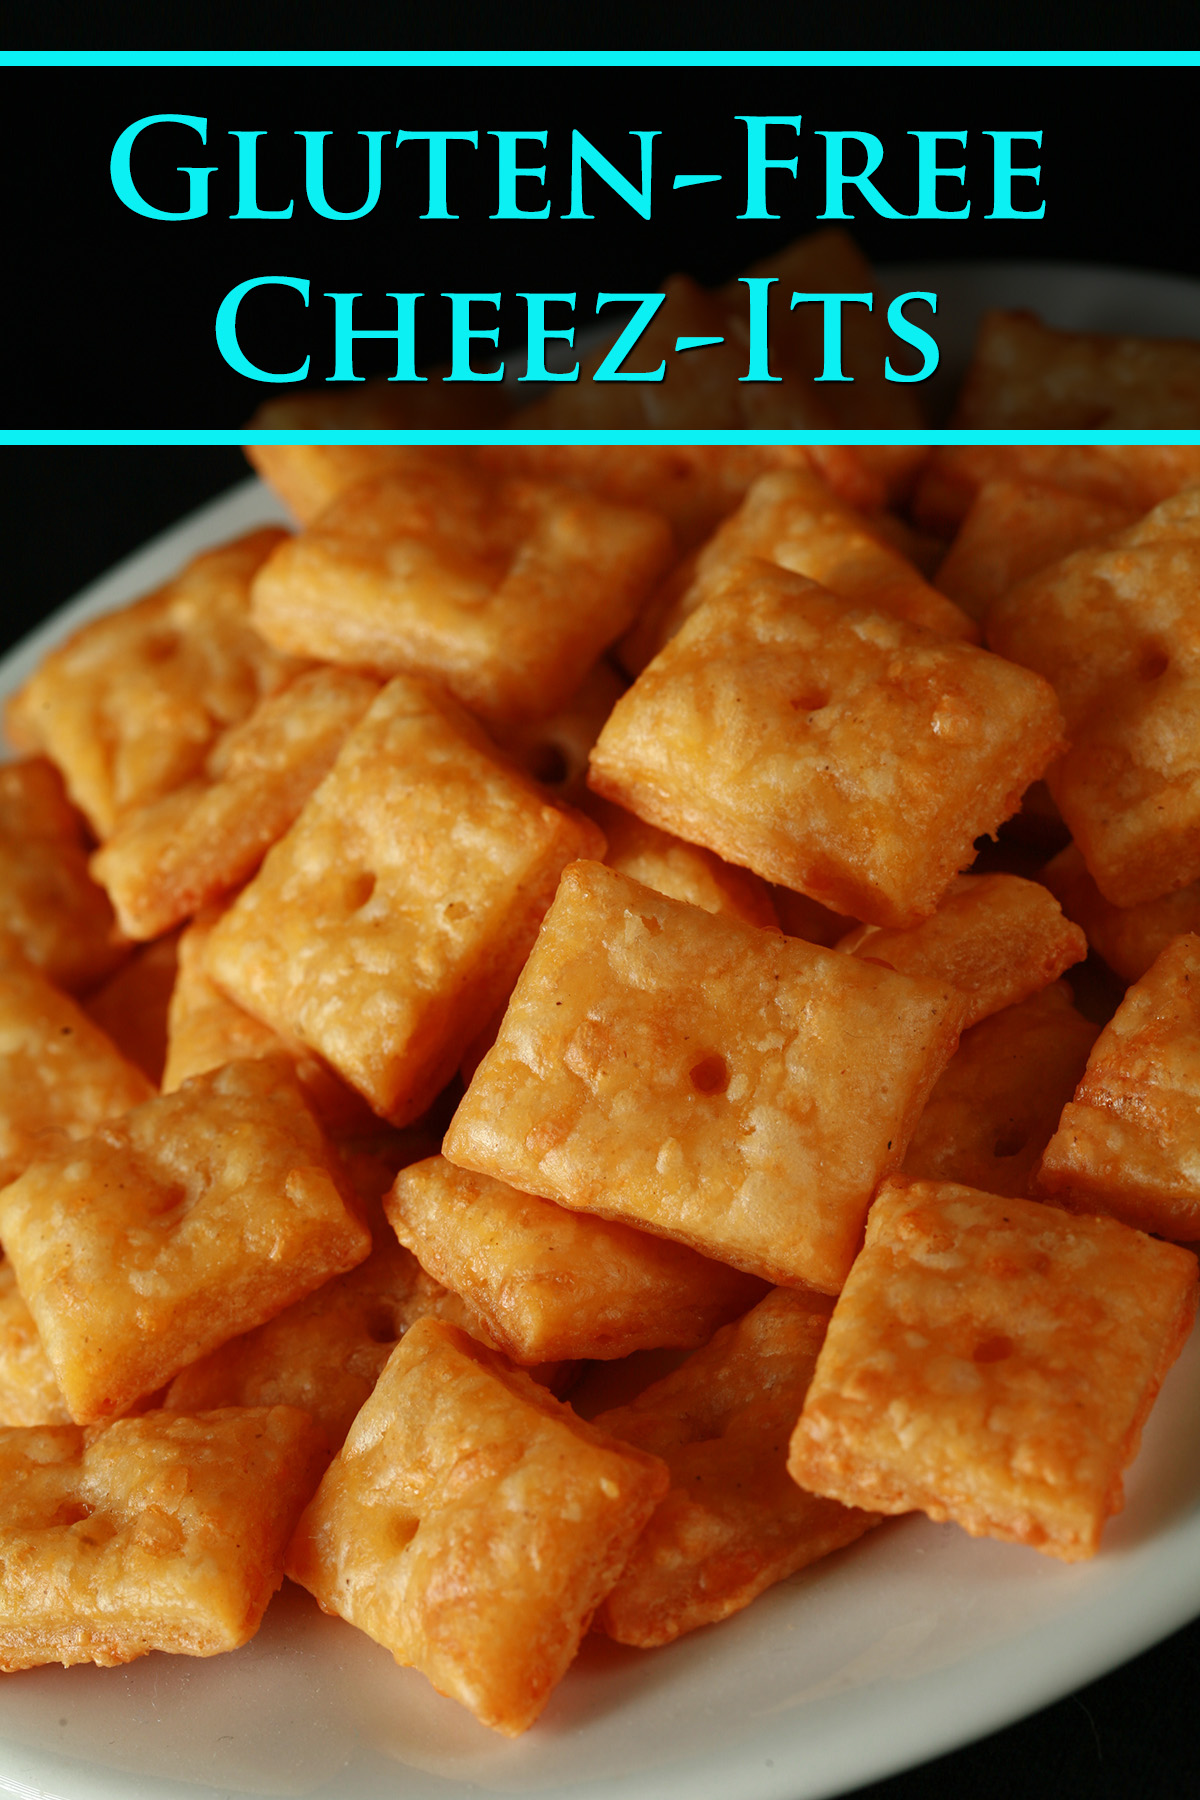 A pile of gluten-Free Cheez-its - little square gluten-free cheese crackers.